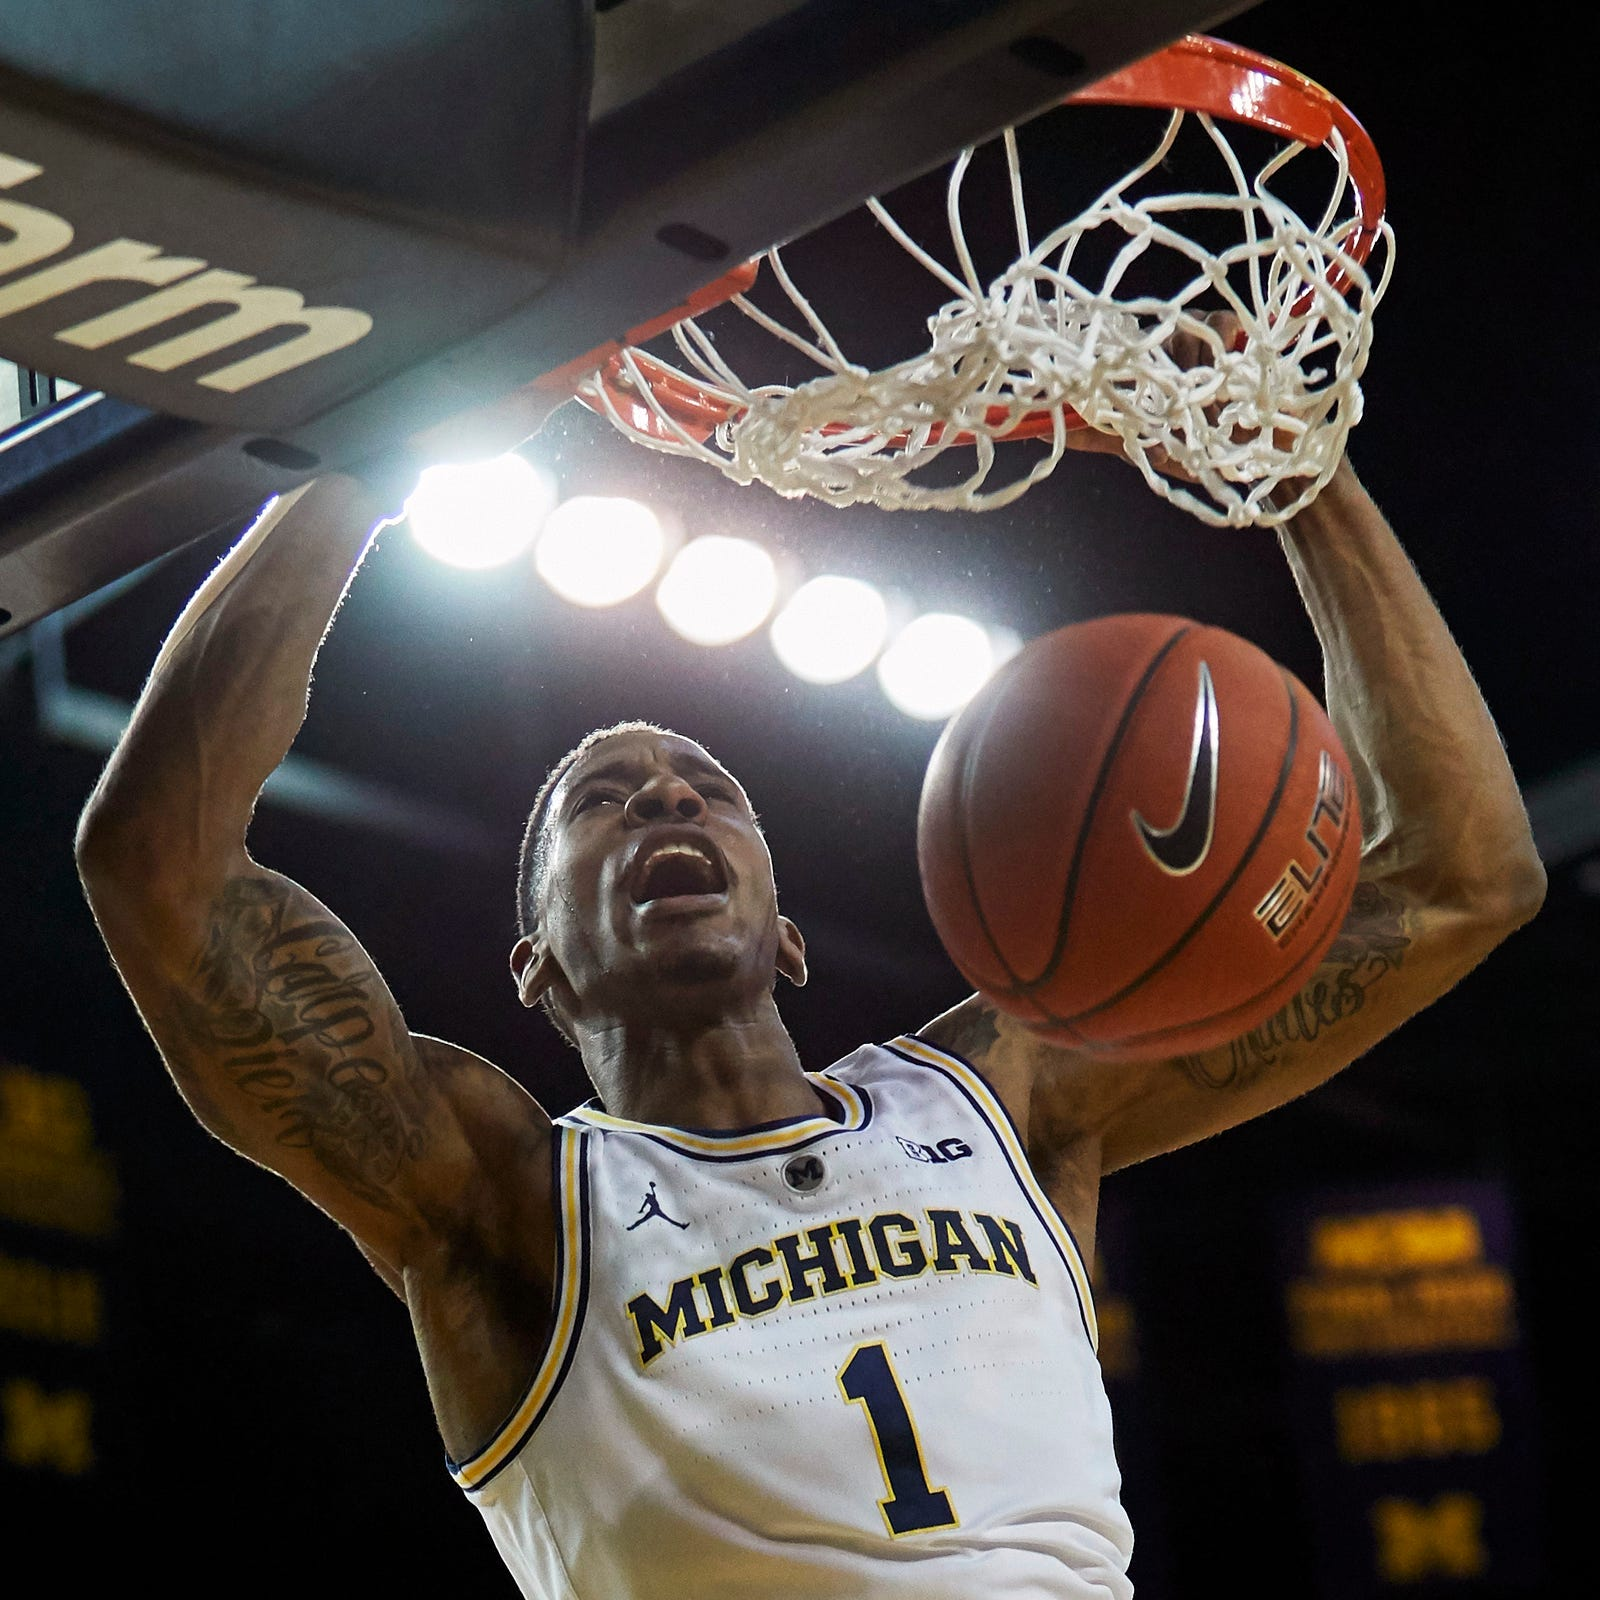 Michigan basketball shakes off early slump to top Western Michigan, 70-62